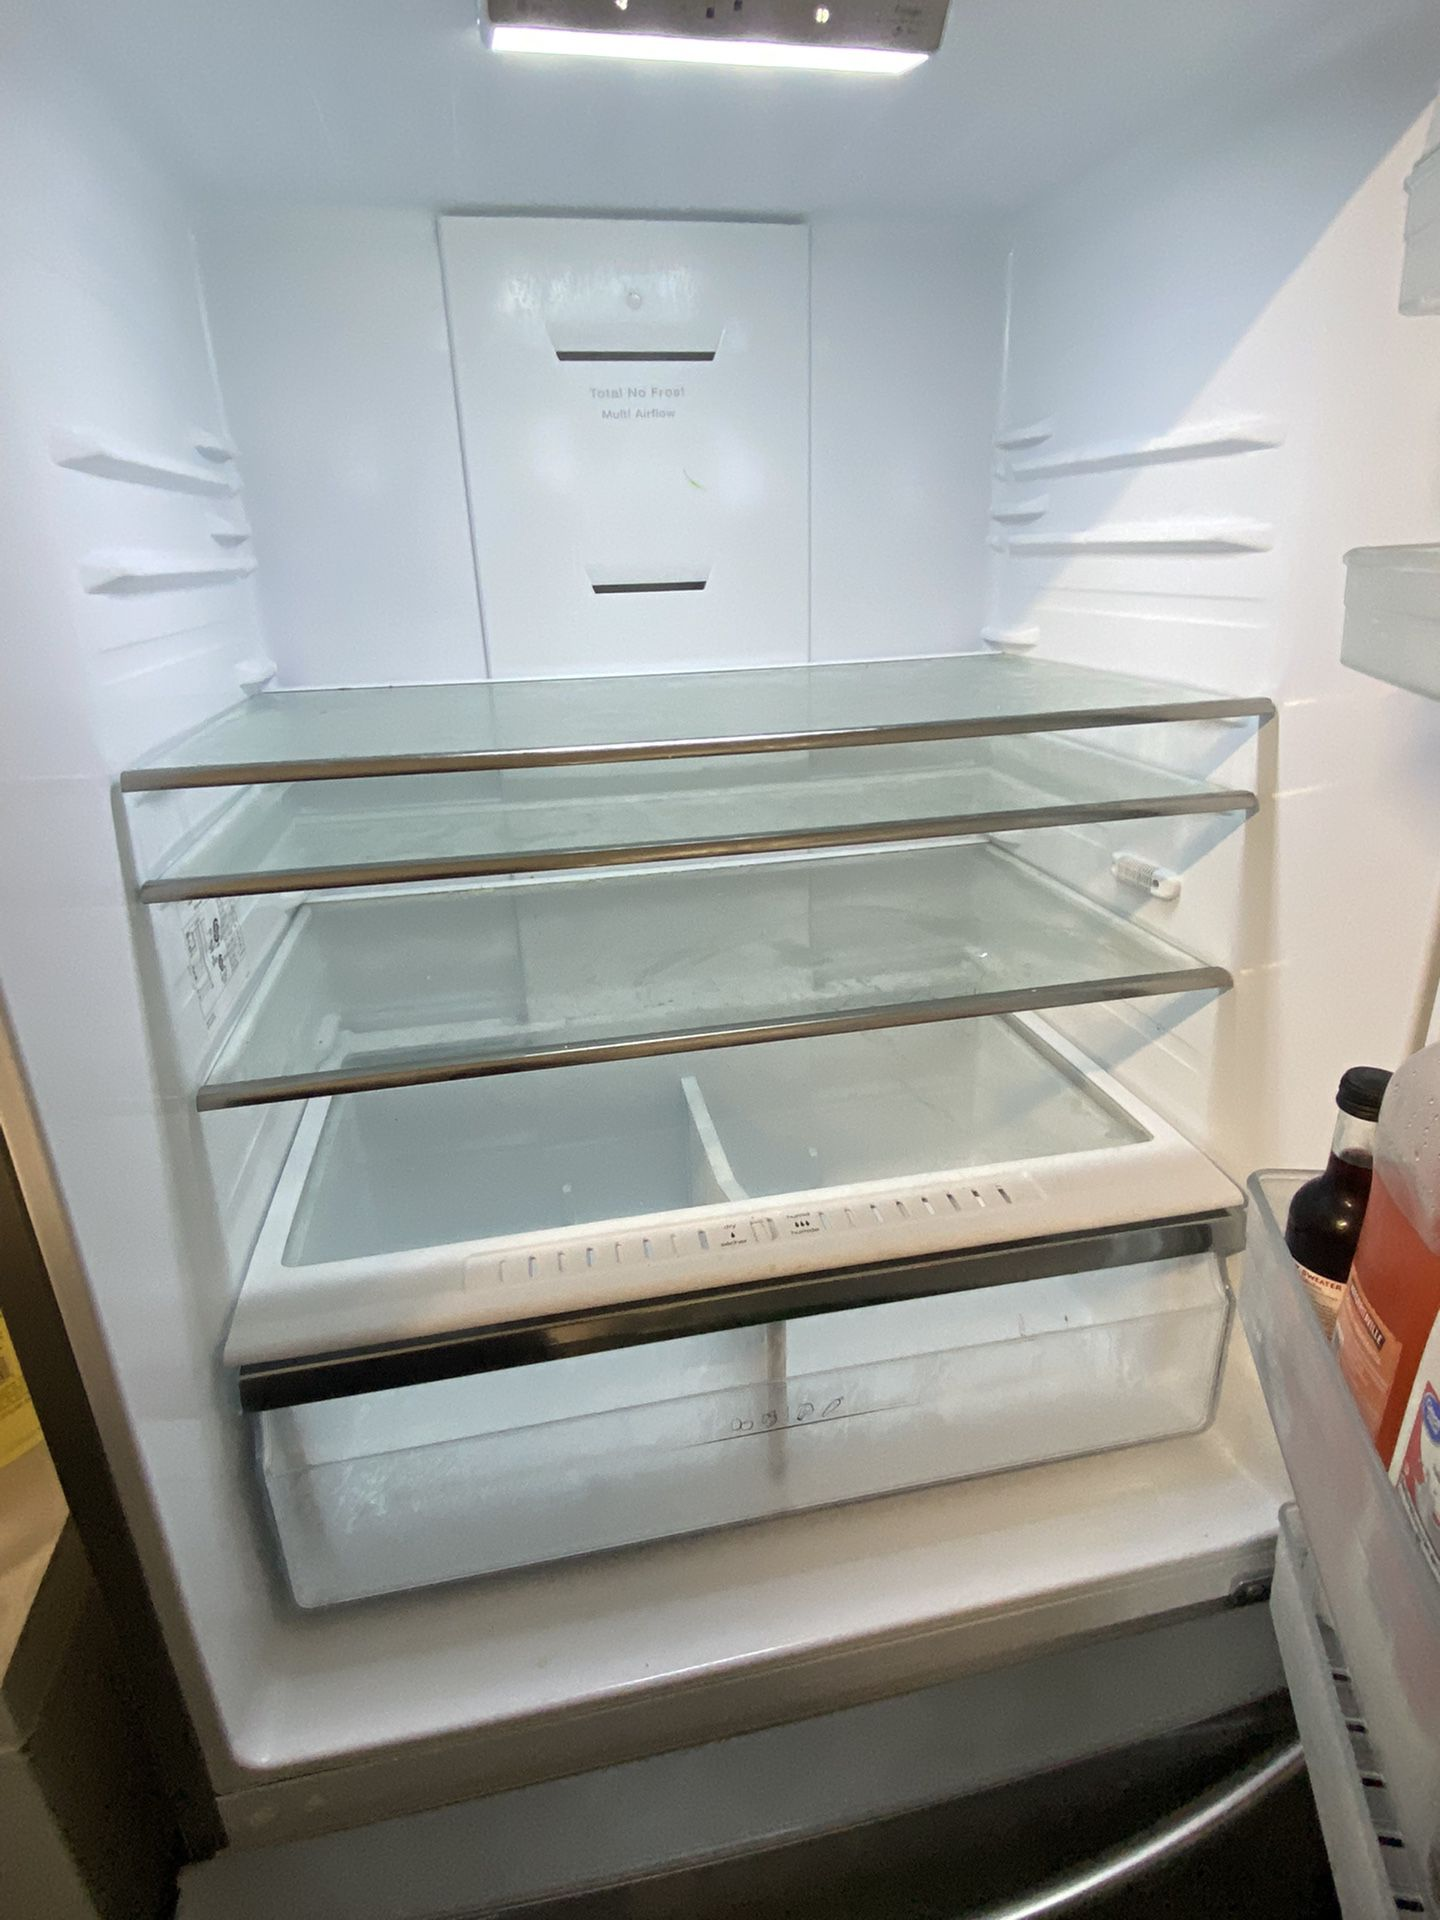 New Stainless Stell Fridge Works Perfect